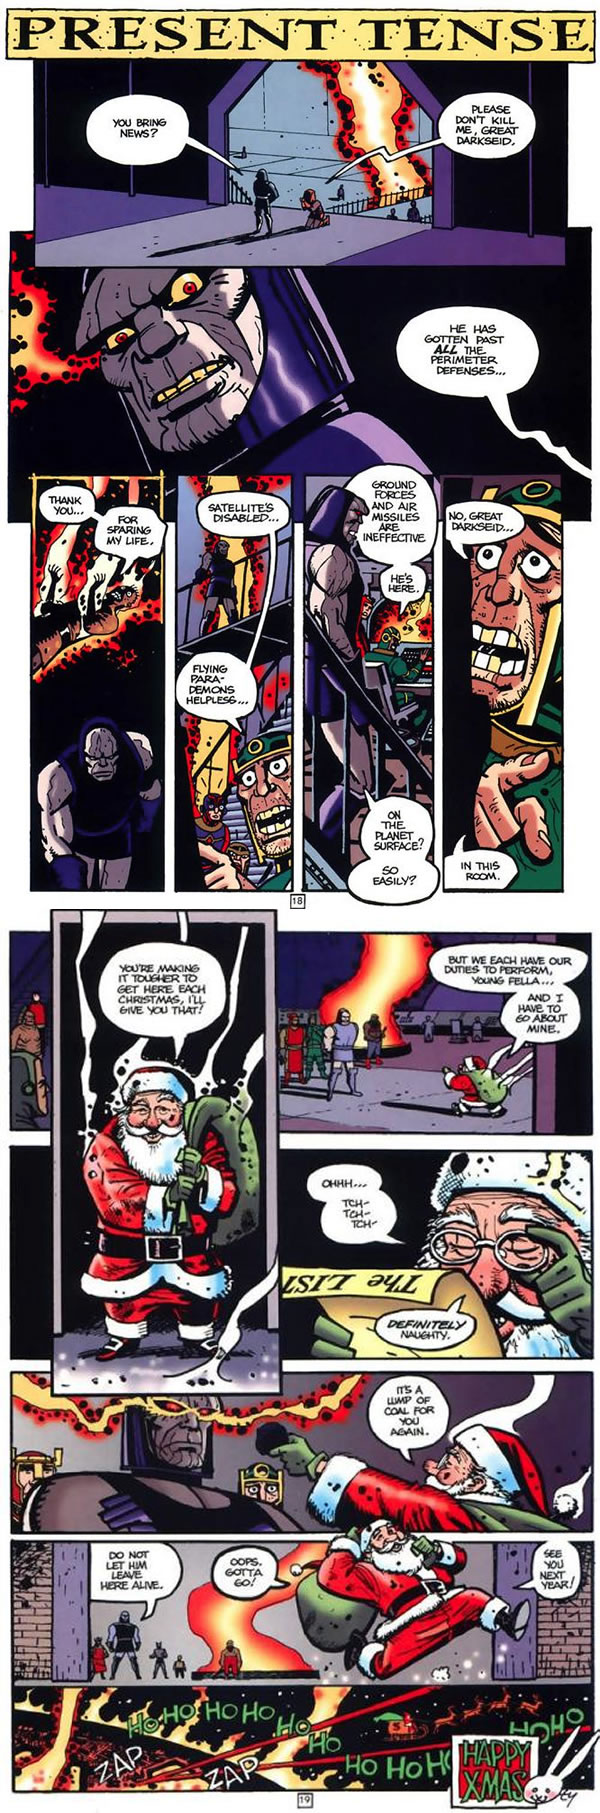 Comic featuring Santa dropping off a present for Darkseid